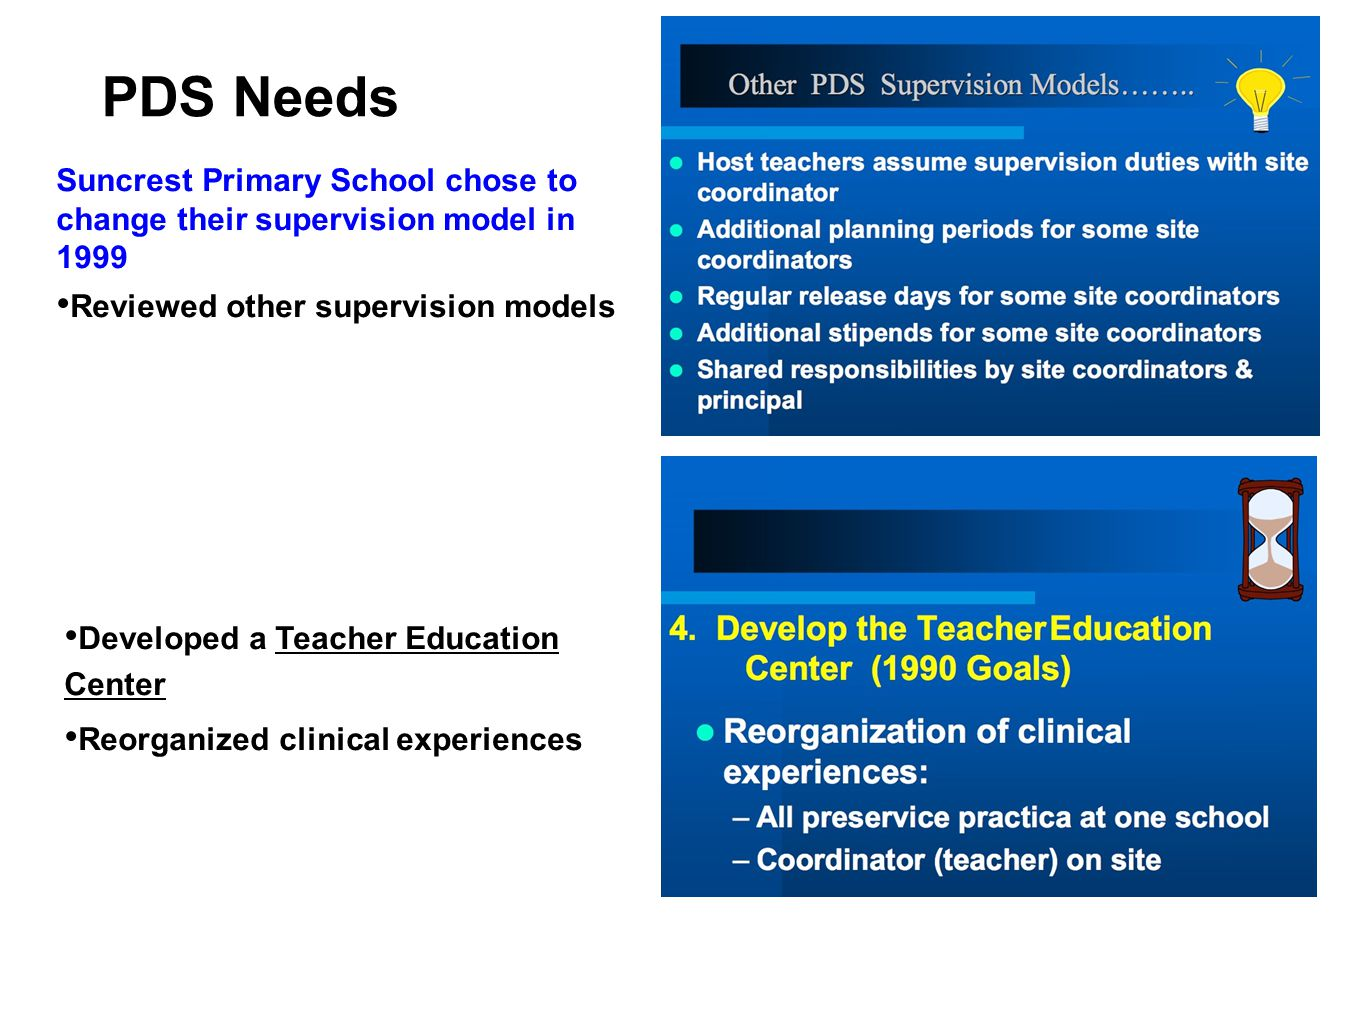 PDS Needs Suncrest Primary School chose to change their supervision model in 1999. Reviewed other supervision models.